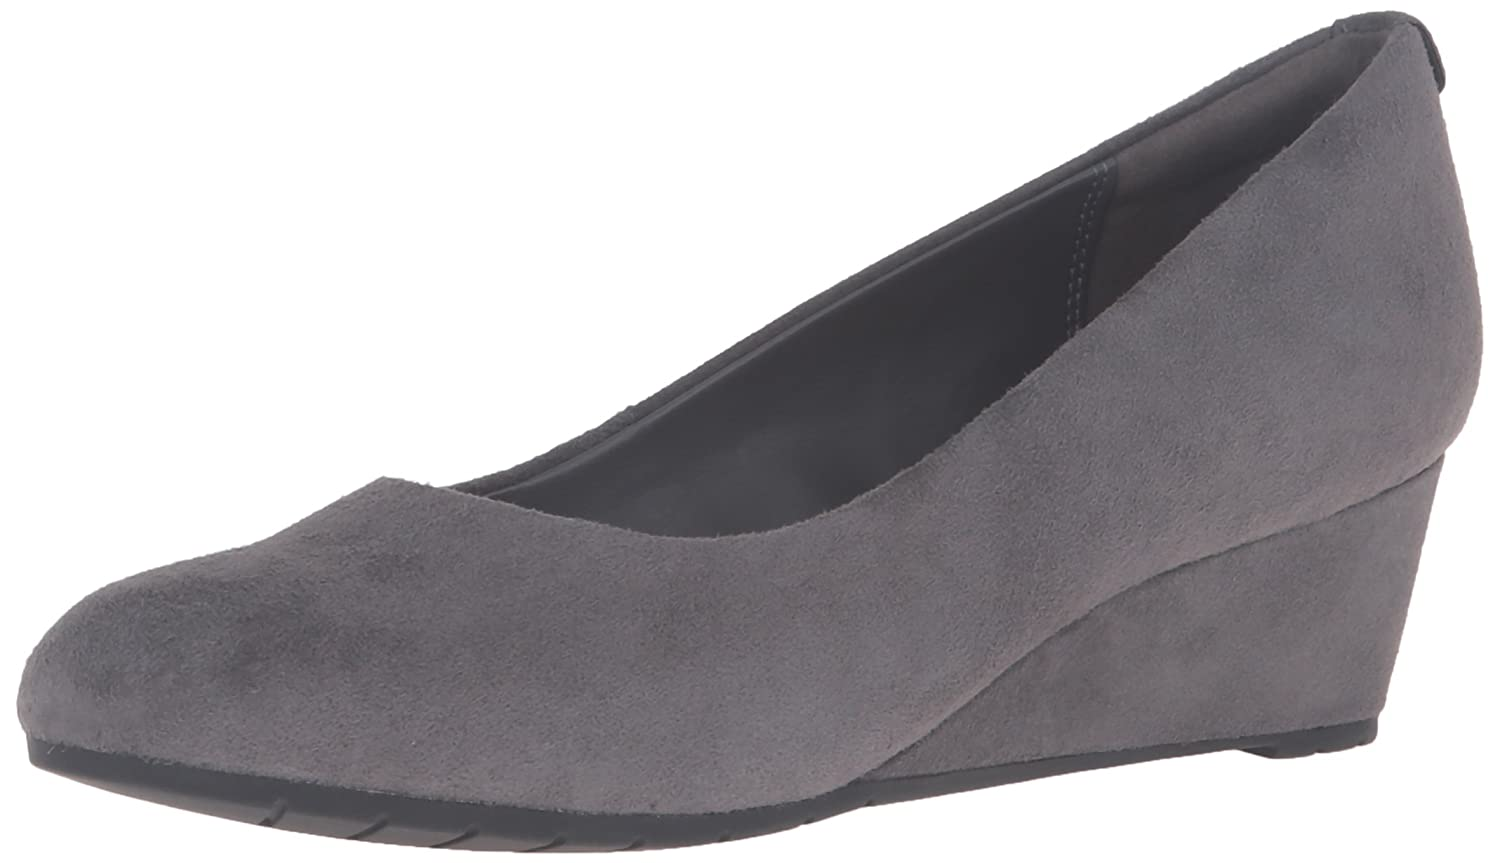 CLARKS Women's Vendra Bloom Wedge Pump B0195EDT54 8.5 B(M) US|Grey Suede